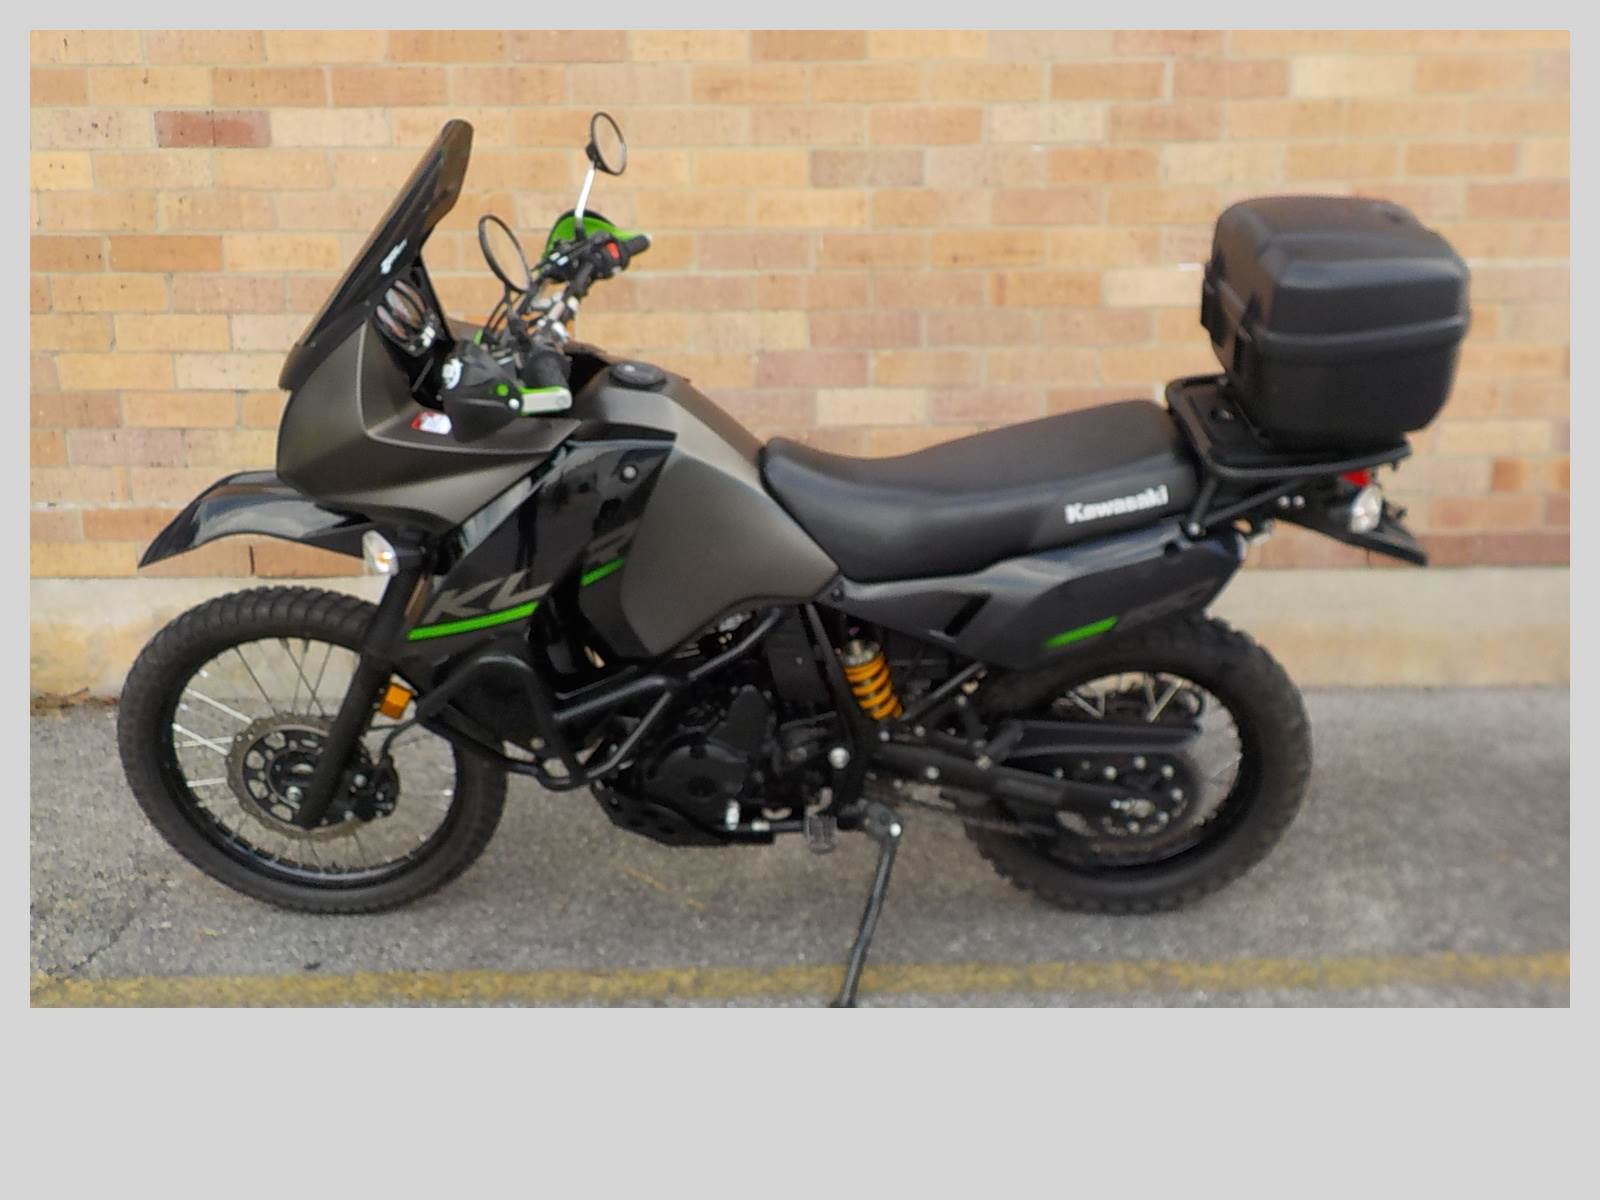 2015 Kawasaki KLR™650 in San Antonio, Texas - Photo 2